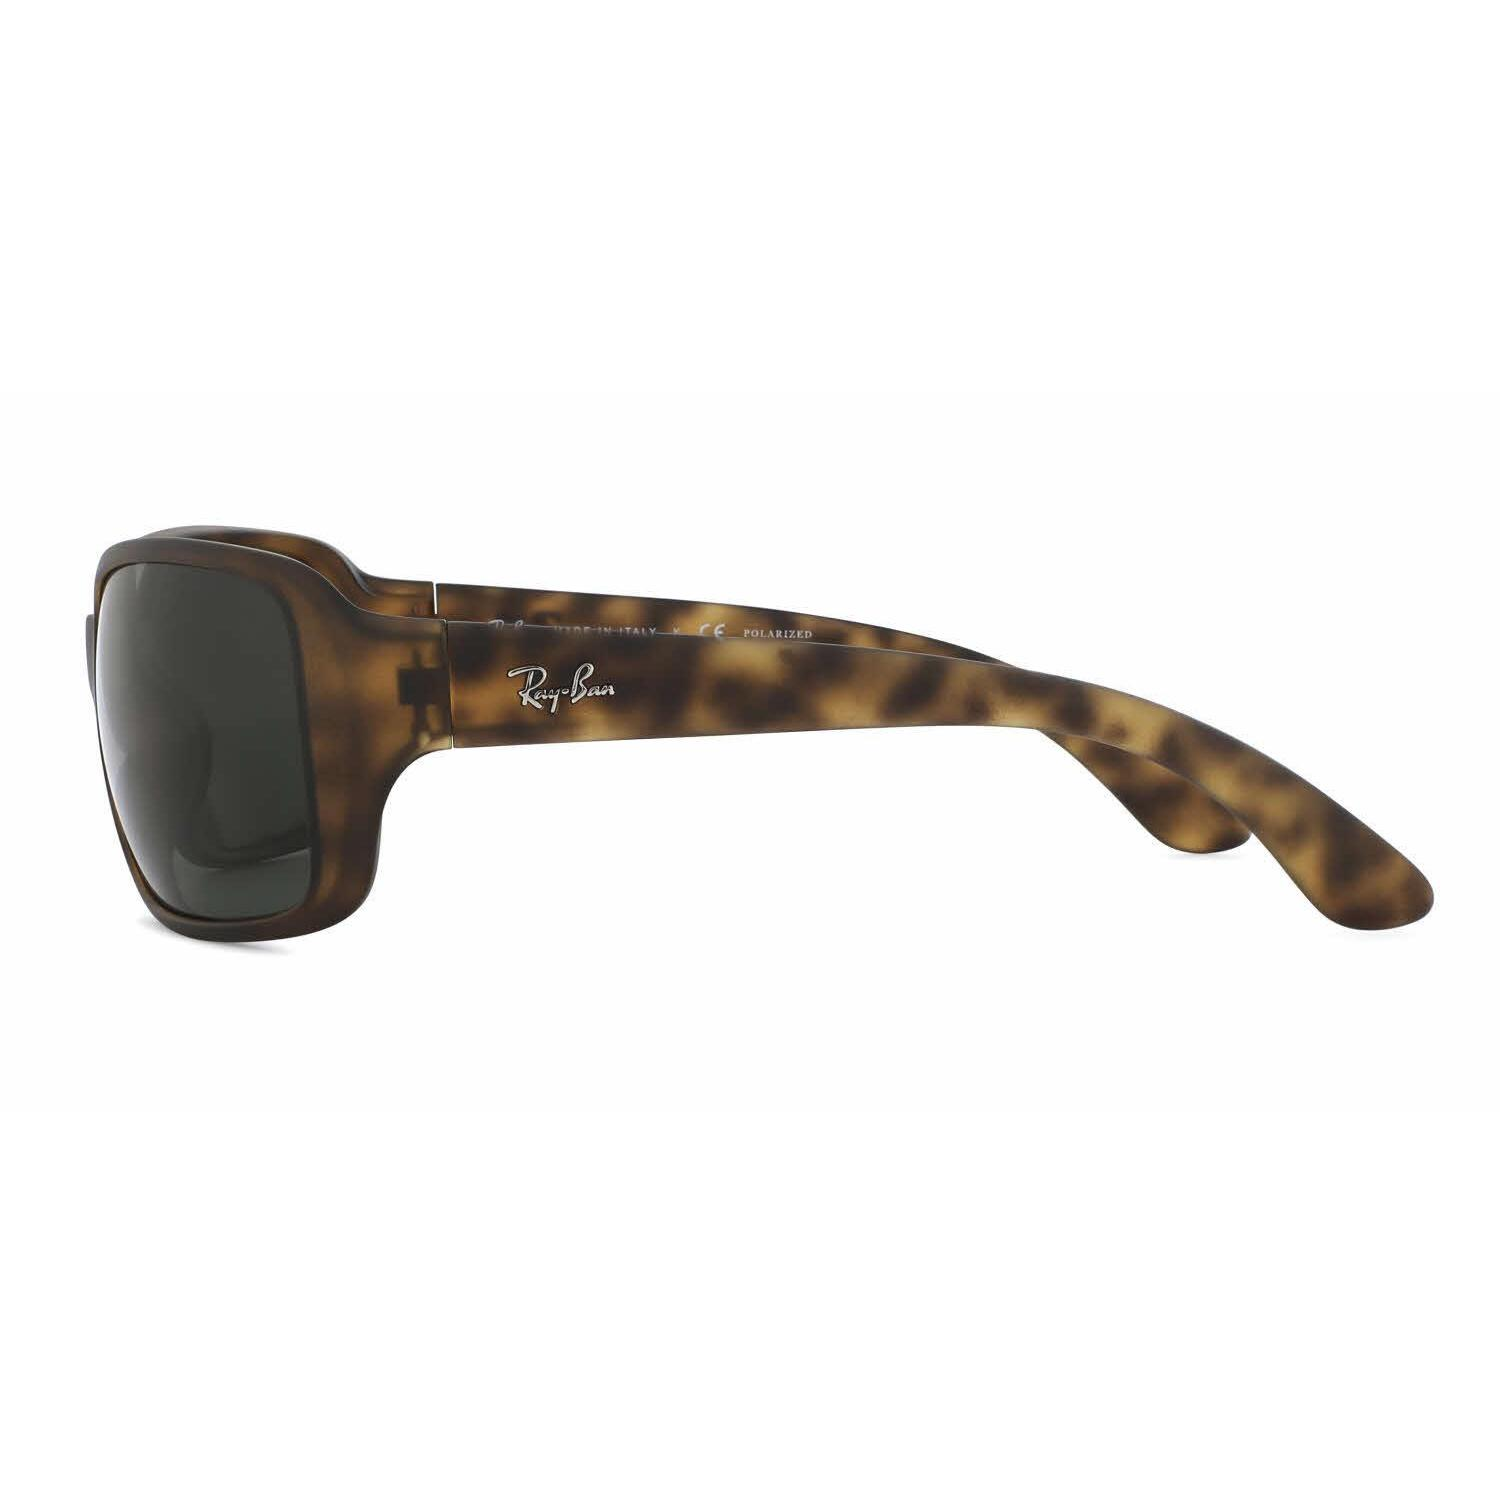 4454dbf437e Shop Ray Ban Women RB4068 894 58 Havana Plastic Square Sunglasses - Free  Shipping Today - Overstock.com - 13325424